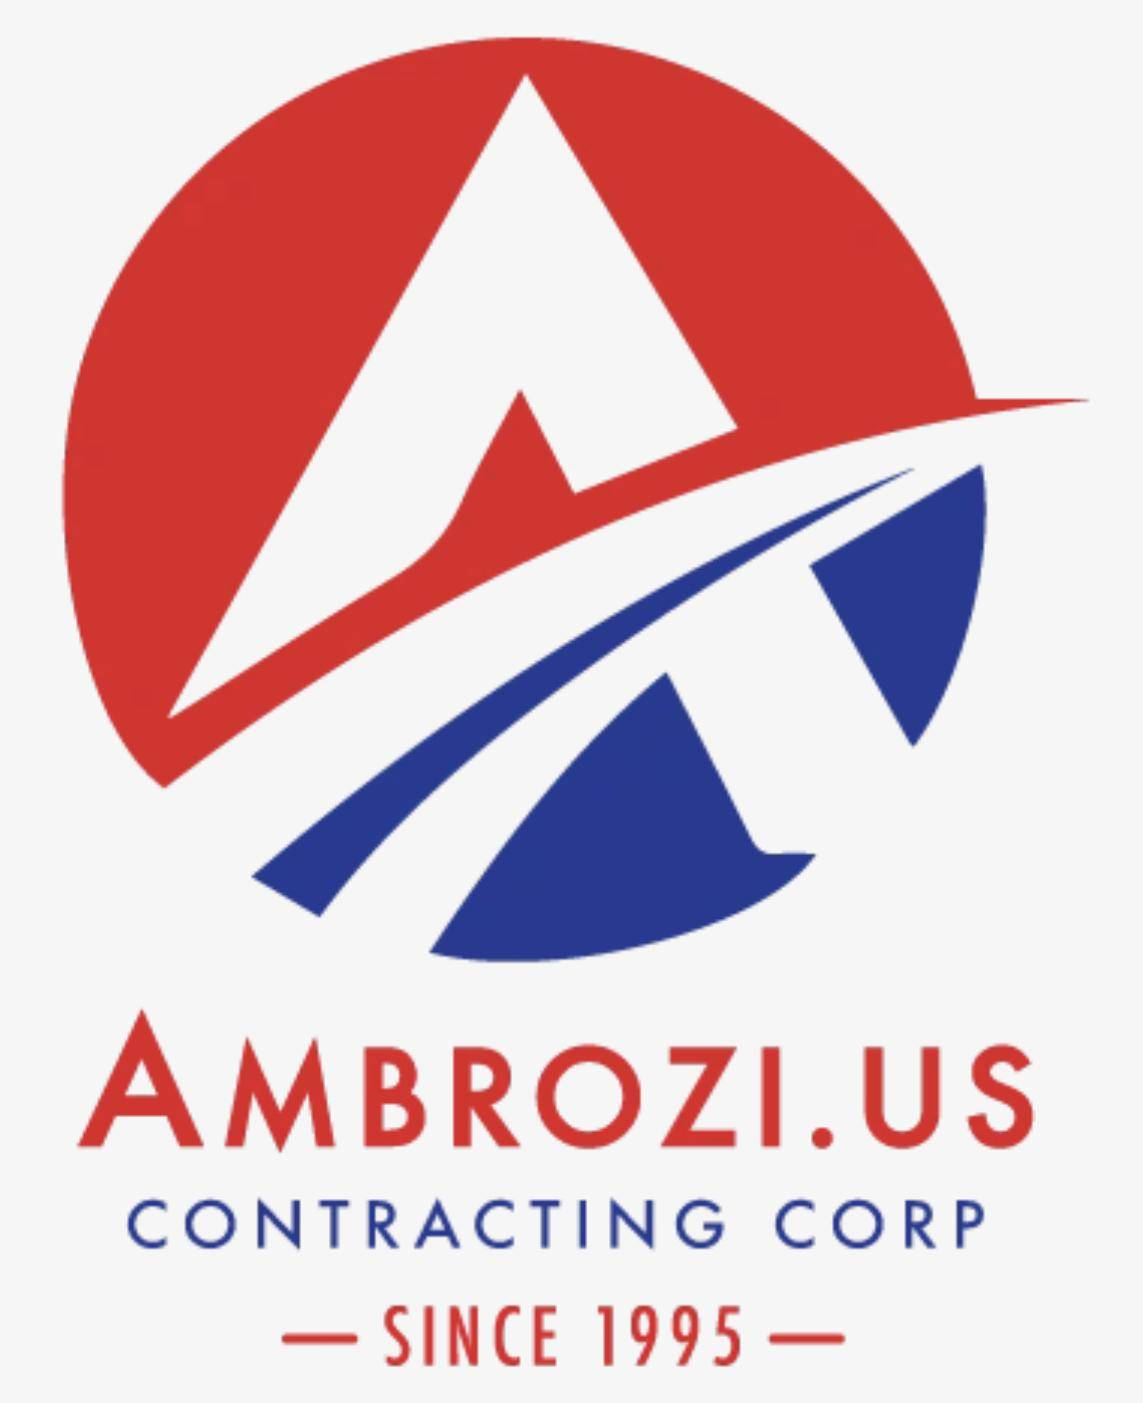 AMBROZI.US Contracting Corp - Paving Contractor - roofing contractor  | Photo 1 of 1 | Address: 520 Francis Street, Suite 500-B, Saint Joseph, Missouri 64501, United States | Phone: (816) 200-0708